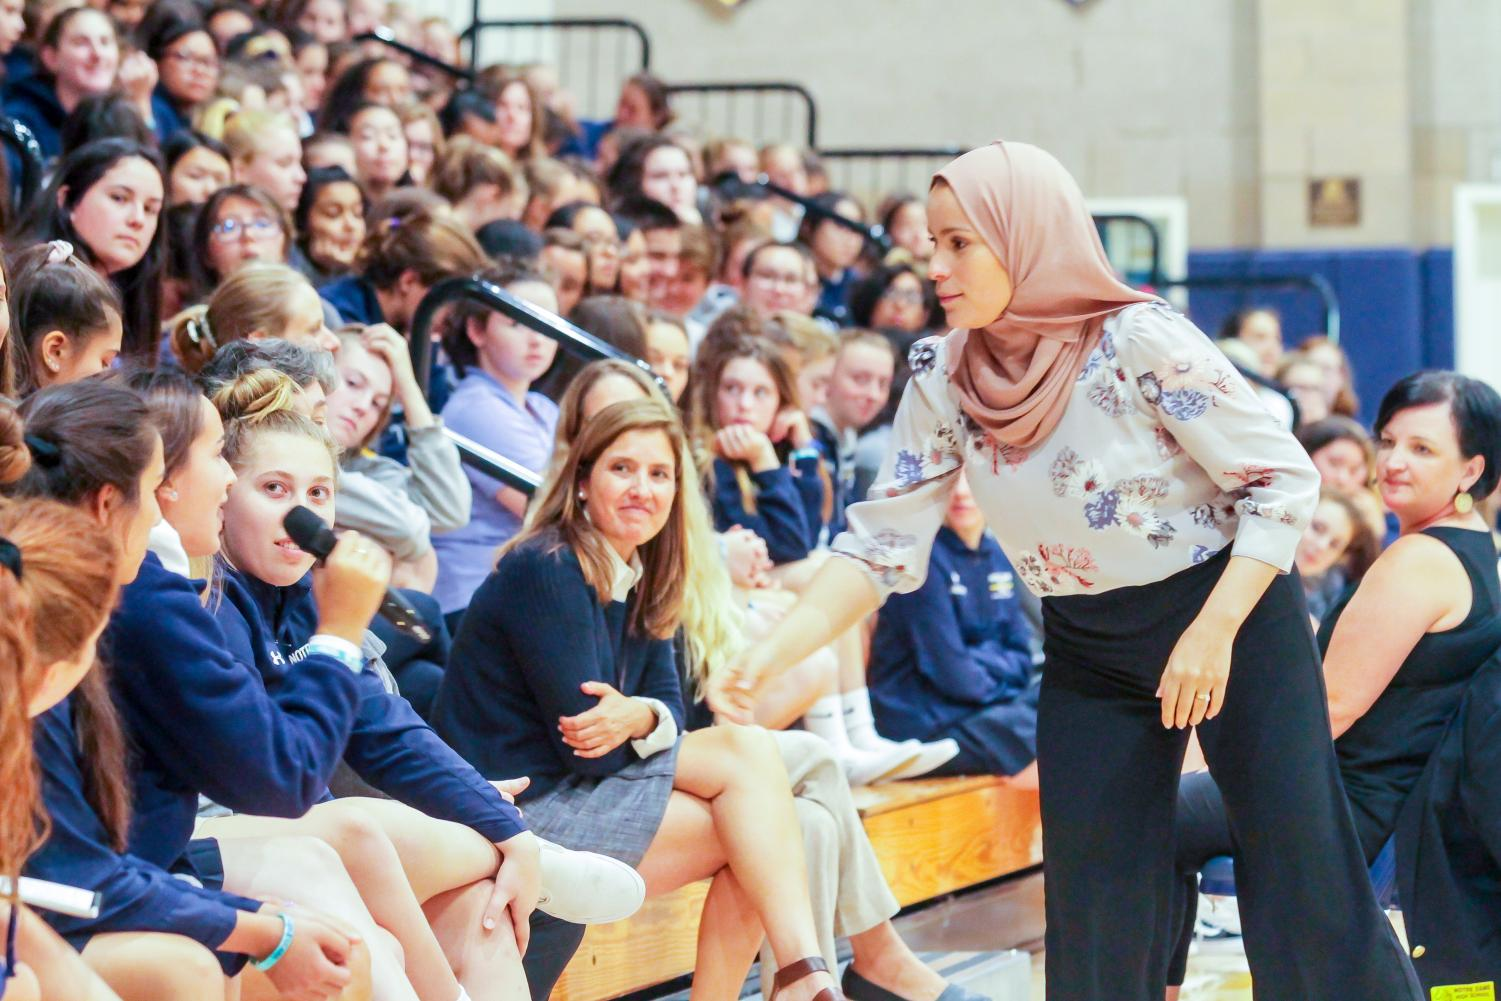 Dr. Alaa Murabit facilitates a discussion with students during a whole school assembly.